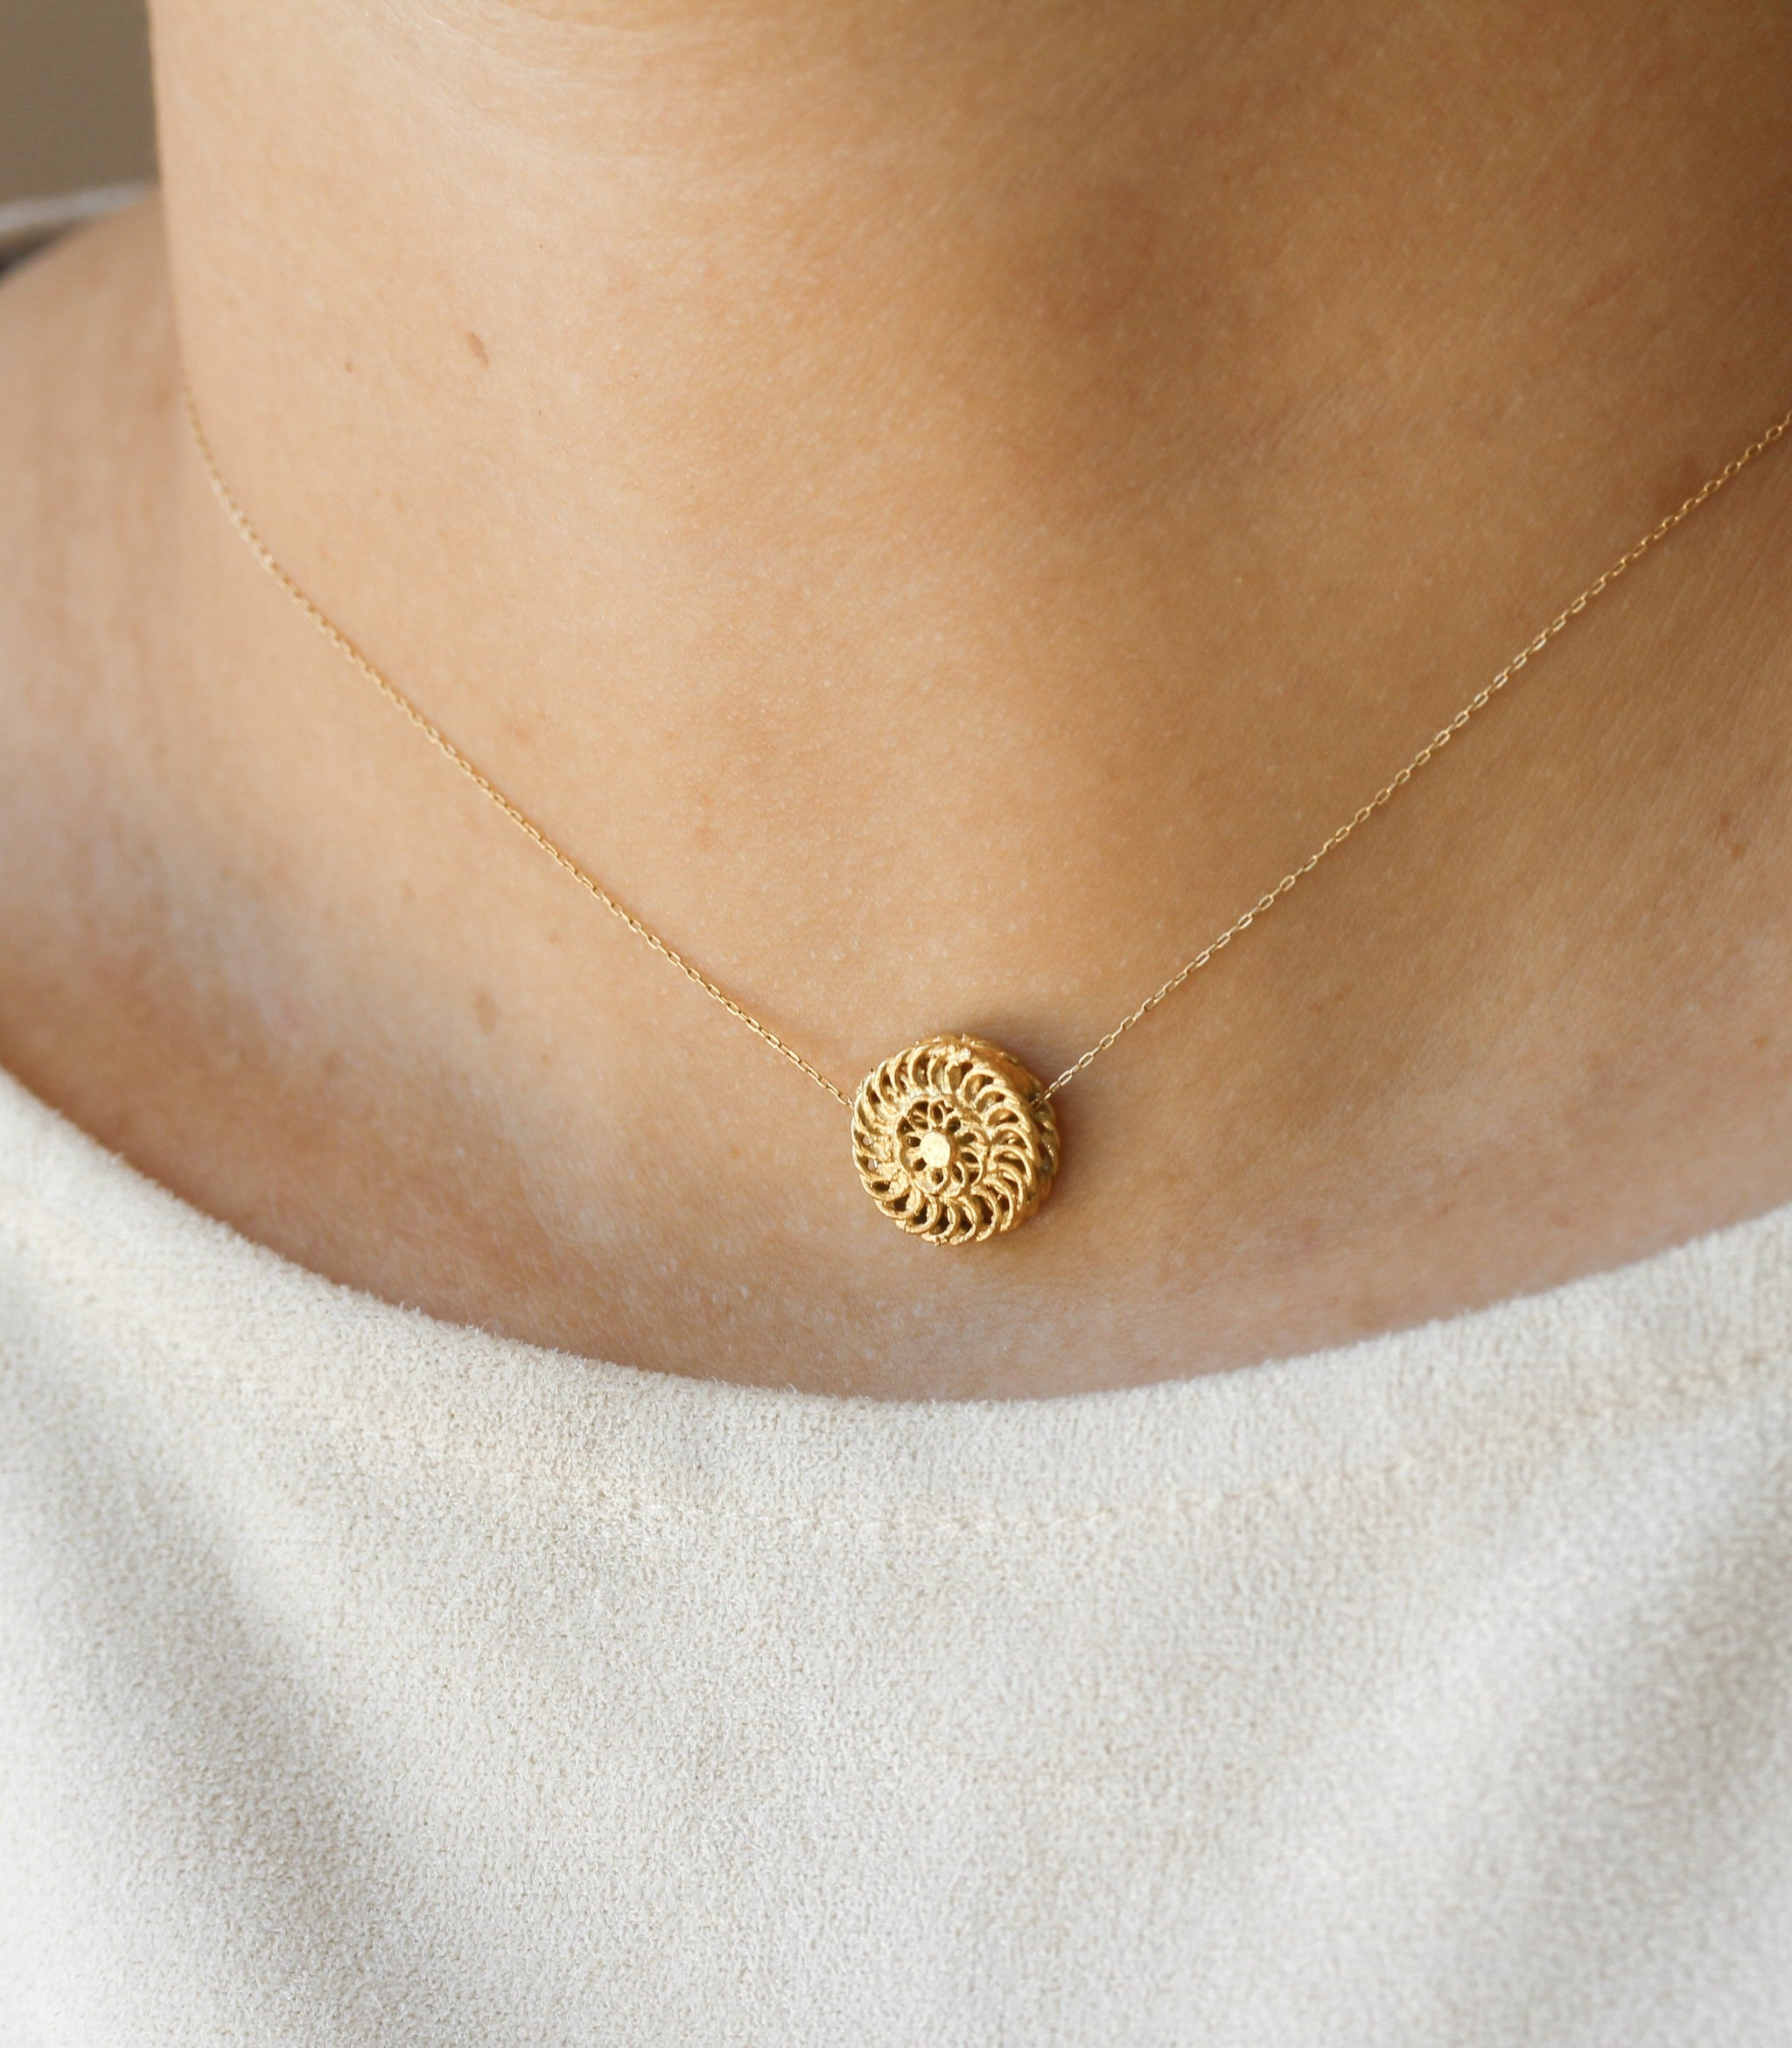 Padumna Chain Pendant Necklace - AMAMI